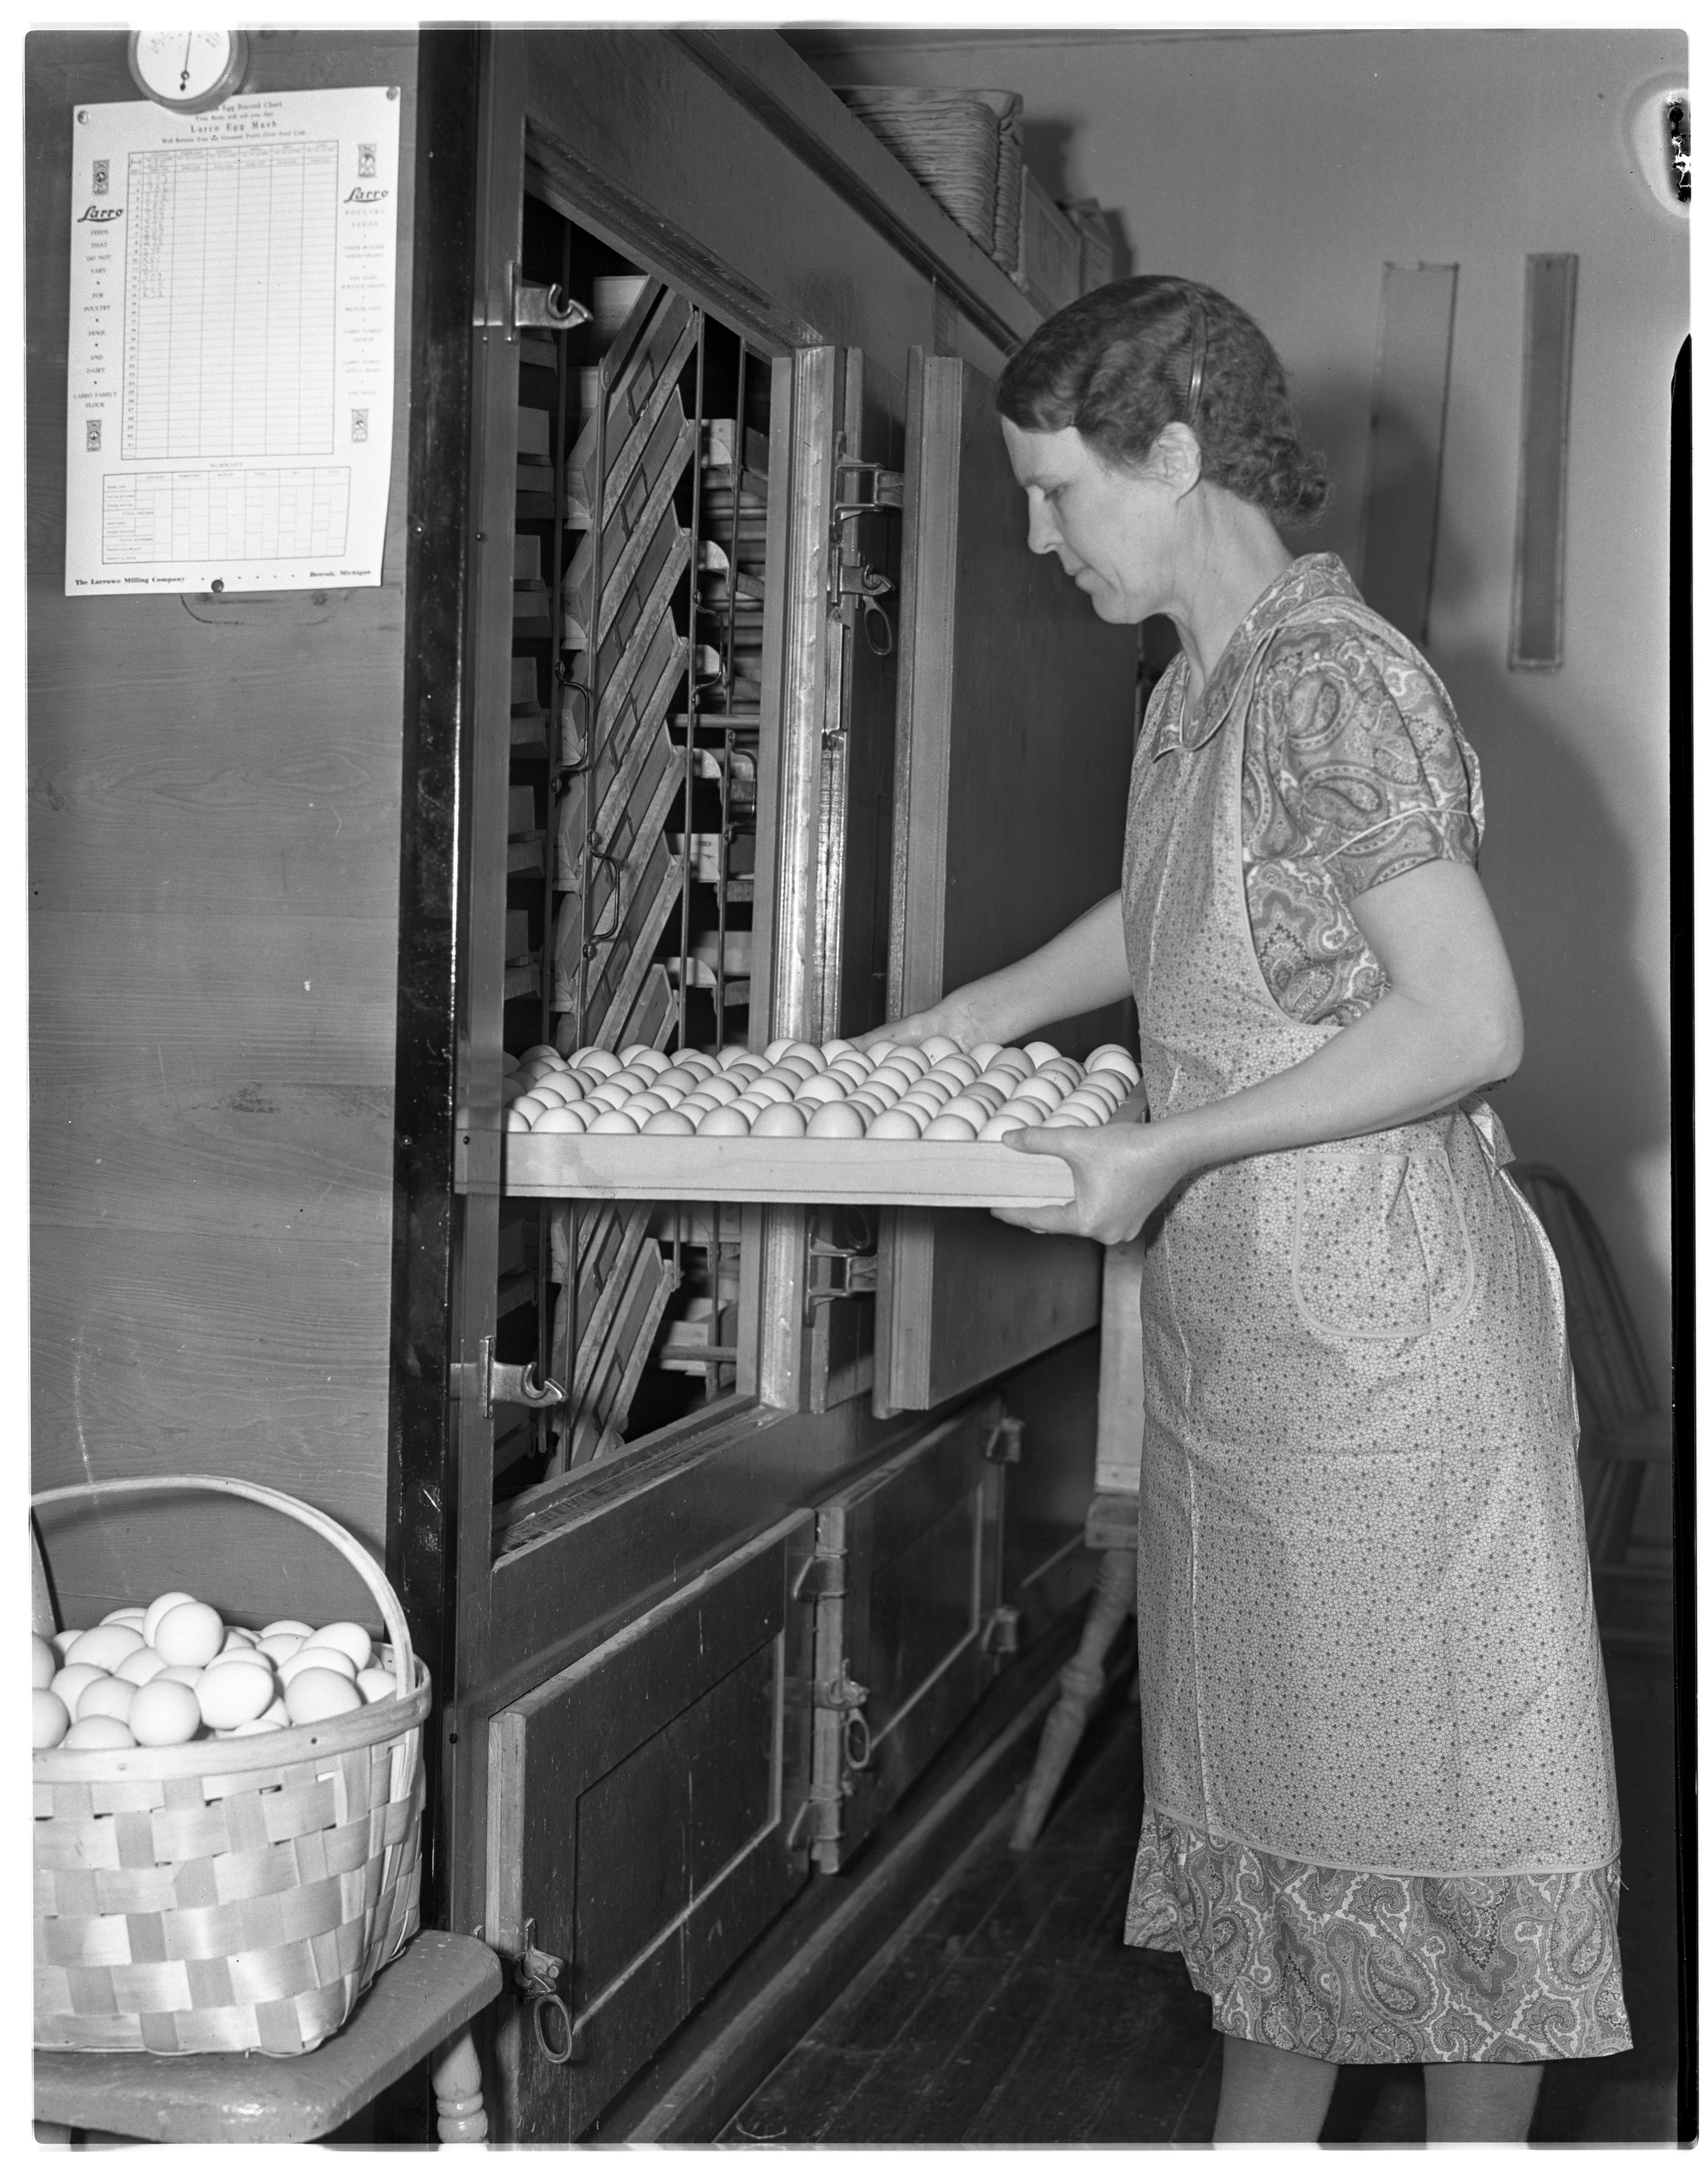 Myrtle Parker Puts Eggs Into An Incubator At The Parker Poultry Farm & Hatchery, January 1938 image